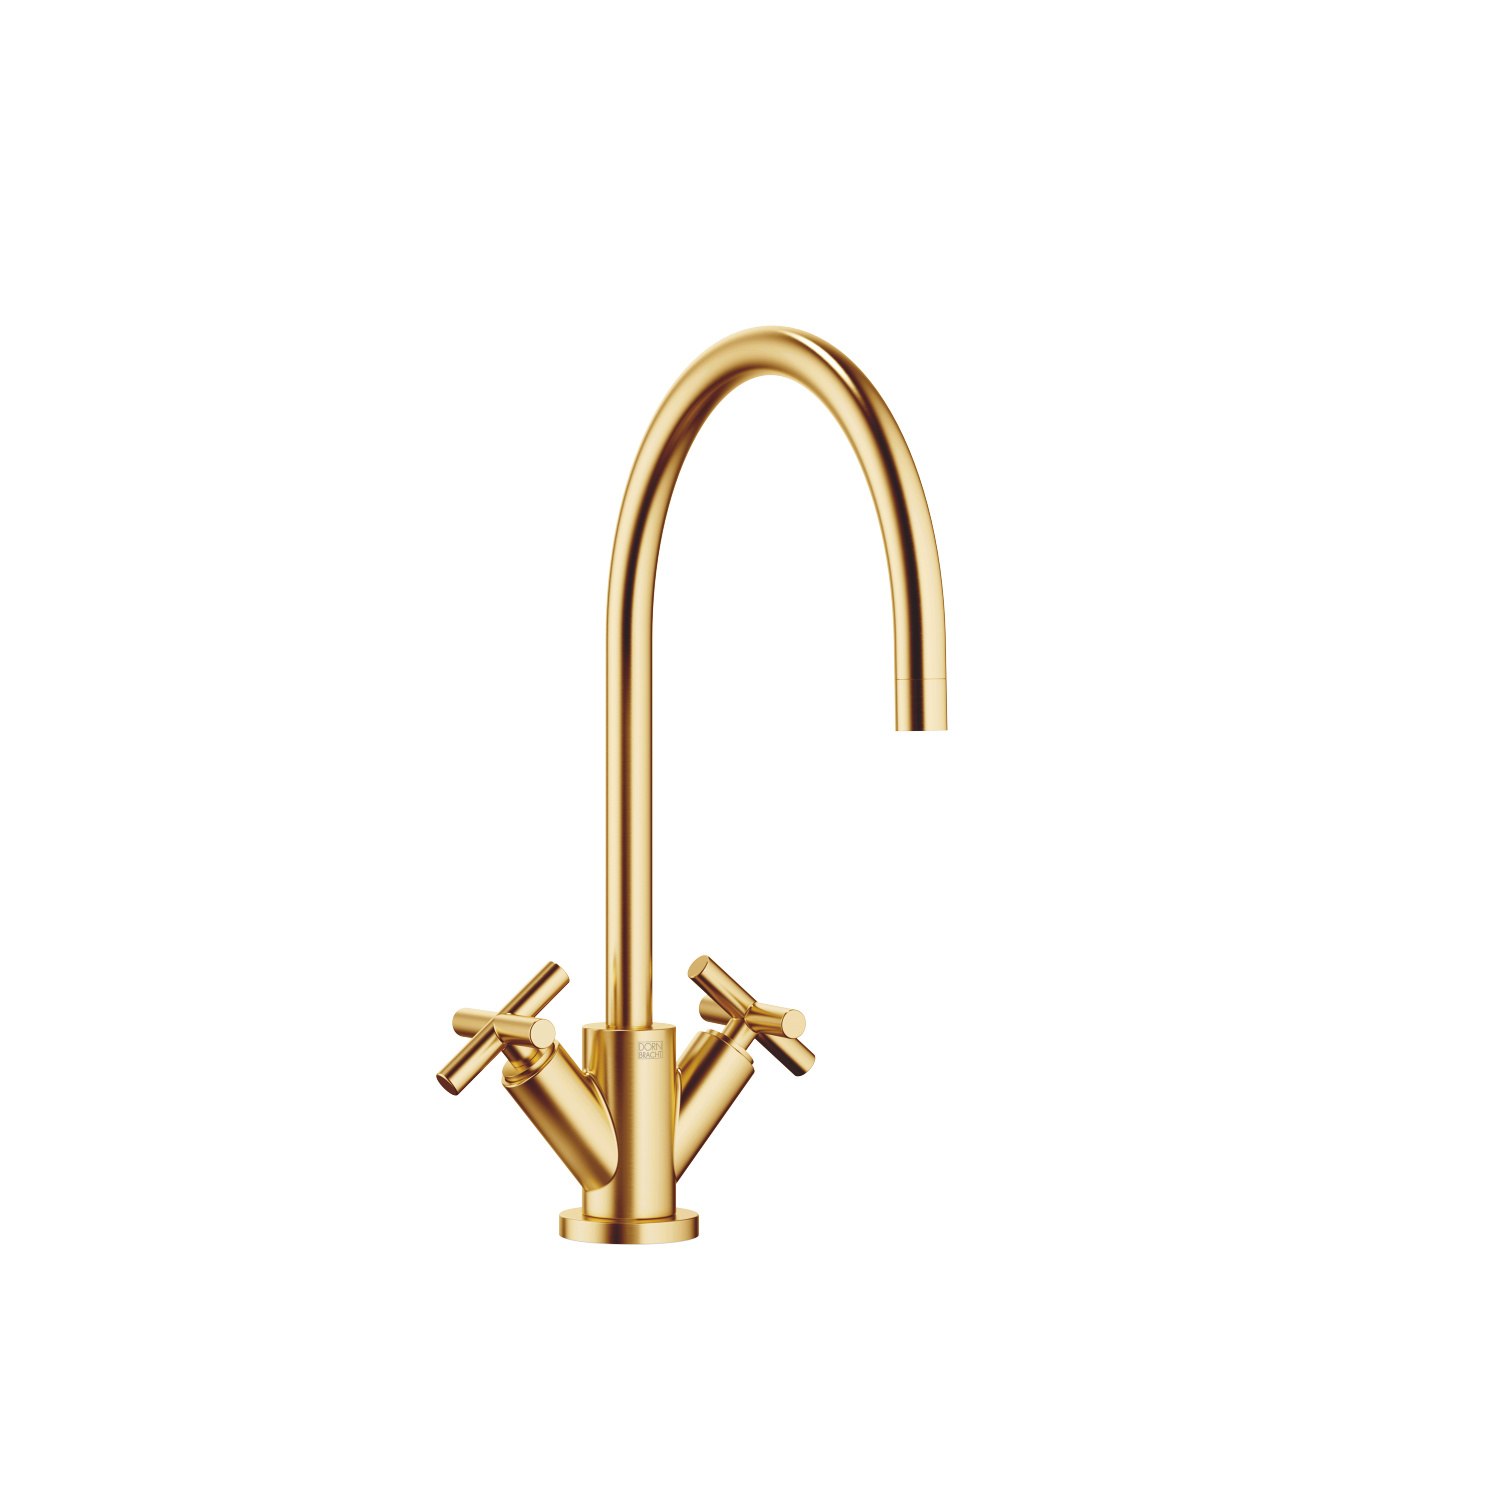 Single-hole mixer - brushed Durabrass